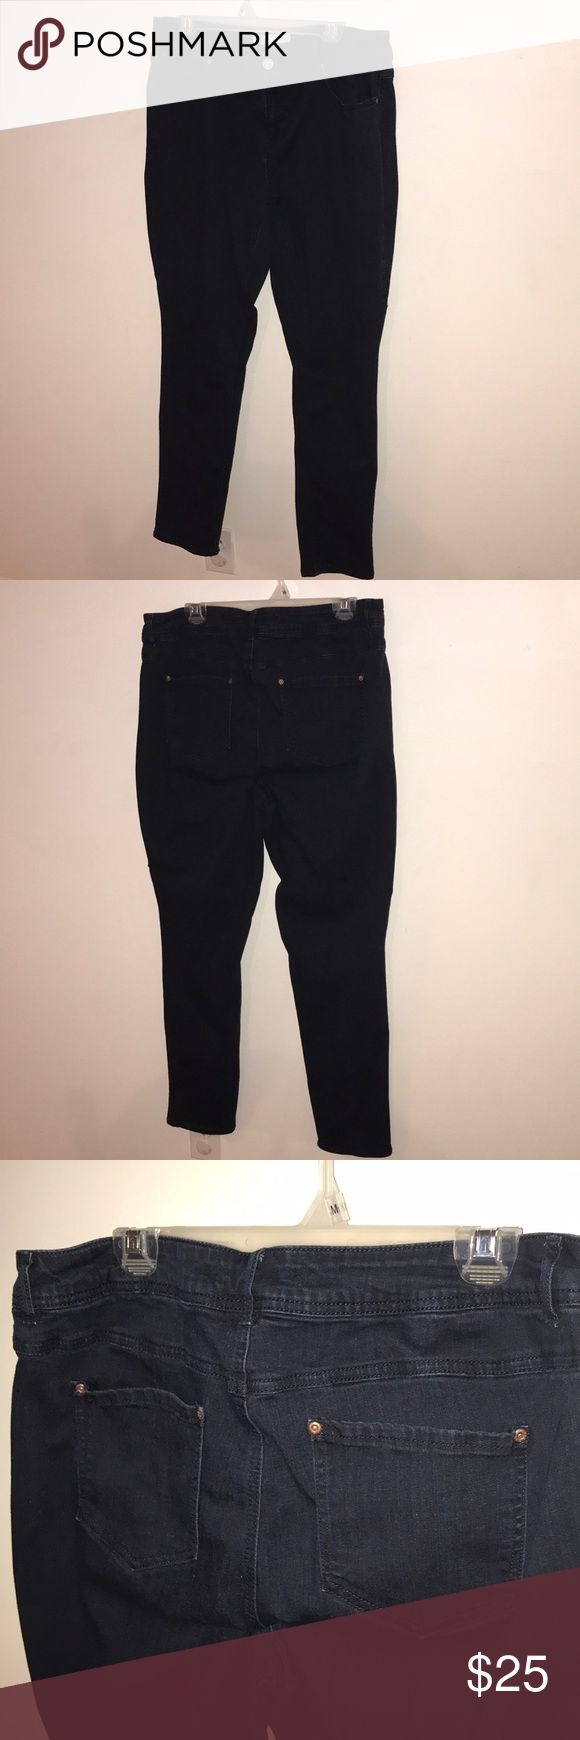 Women's stretch straight/skinny jeans size 16 Women's stretch straight leg/skinny jeans dark blue. Bought at Catos and I didn't like them but wore them twice so couldn't take them back. Size 16. They have a 30 inch inseam. Measures 17.5 inches across the waist laying flat. Measures 10.5 inches from top of waist to the crotch in the front. Measures 22.5 inches cross the hips. These jeans are super stretchy. I'm a 16 and these are a little big for me. No defects. Pet and smoke free home. Est…